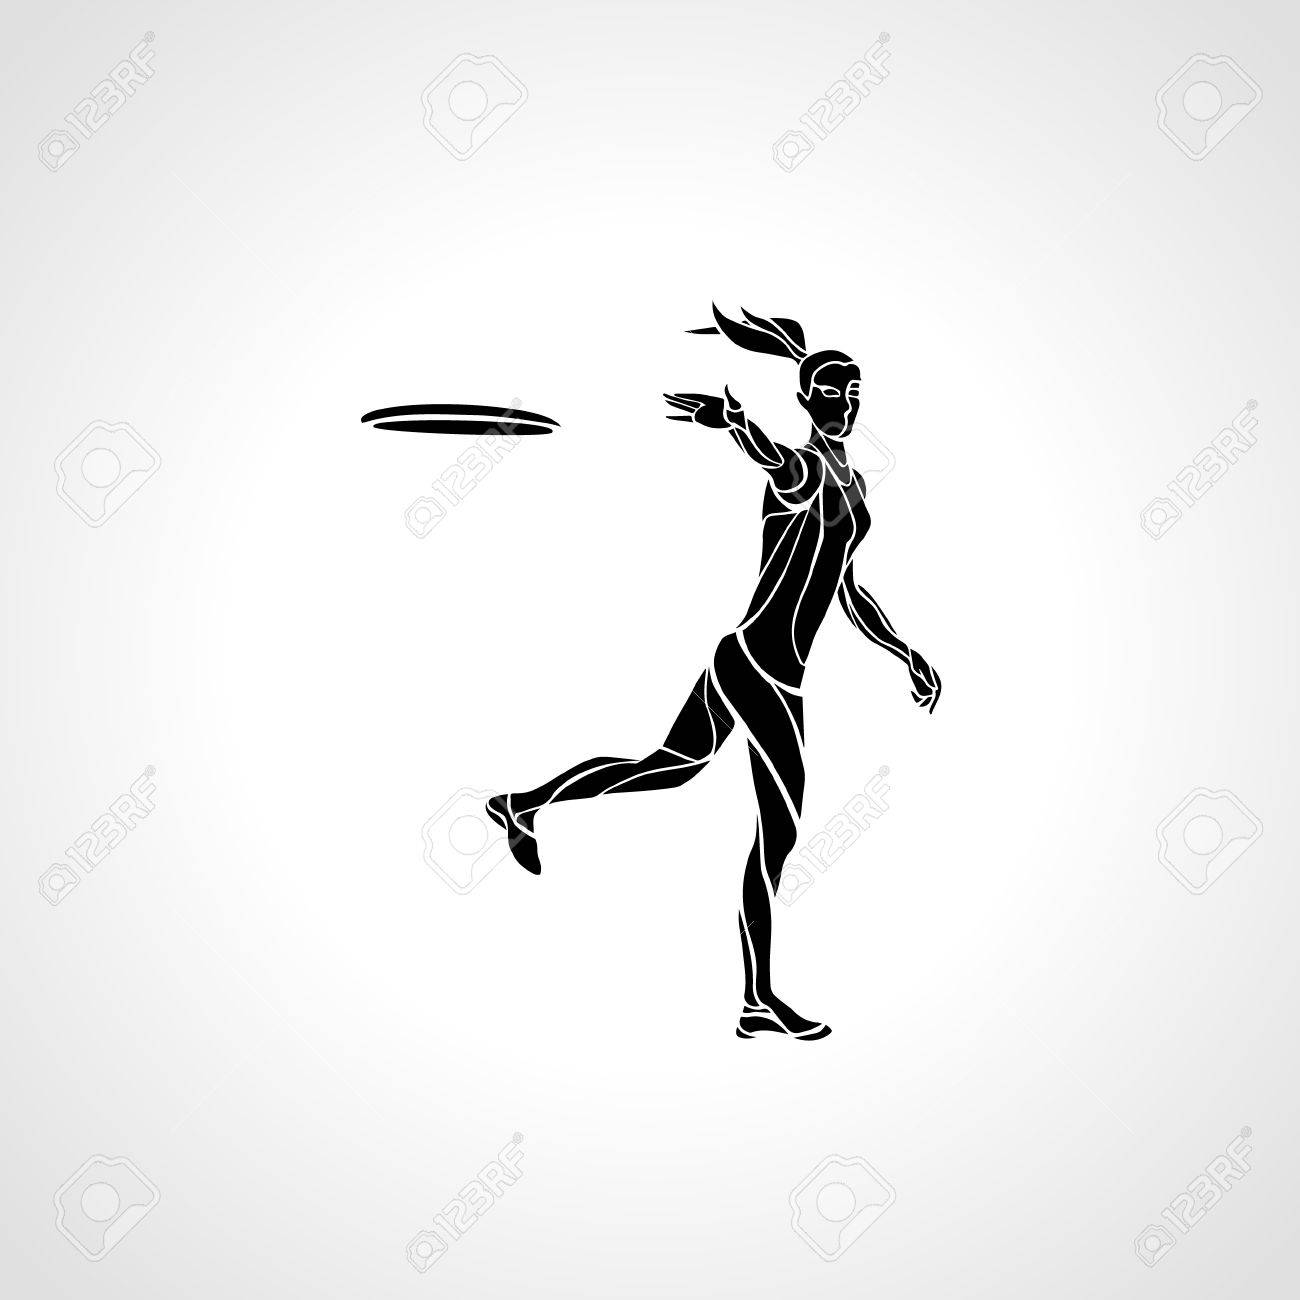 Female Player Is Throwing Flying Disc Silhouette Of Disc Golf